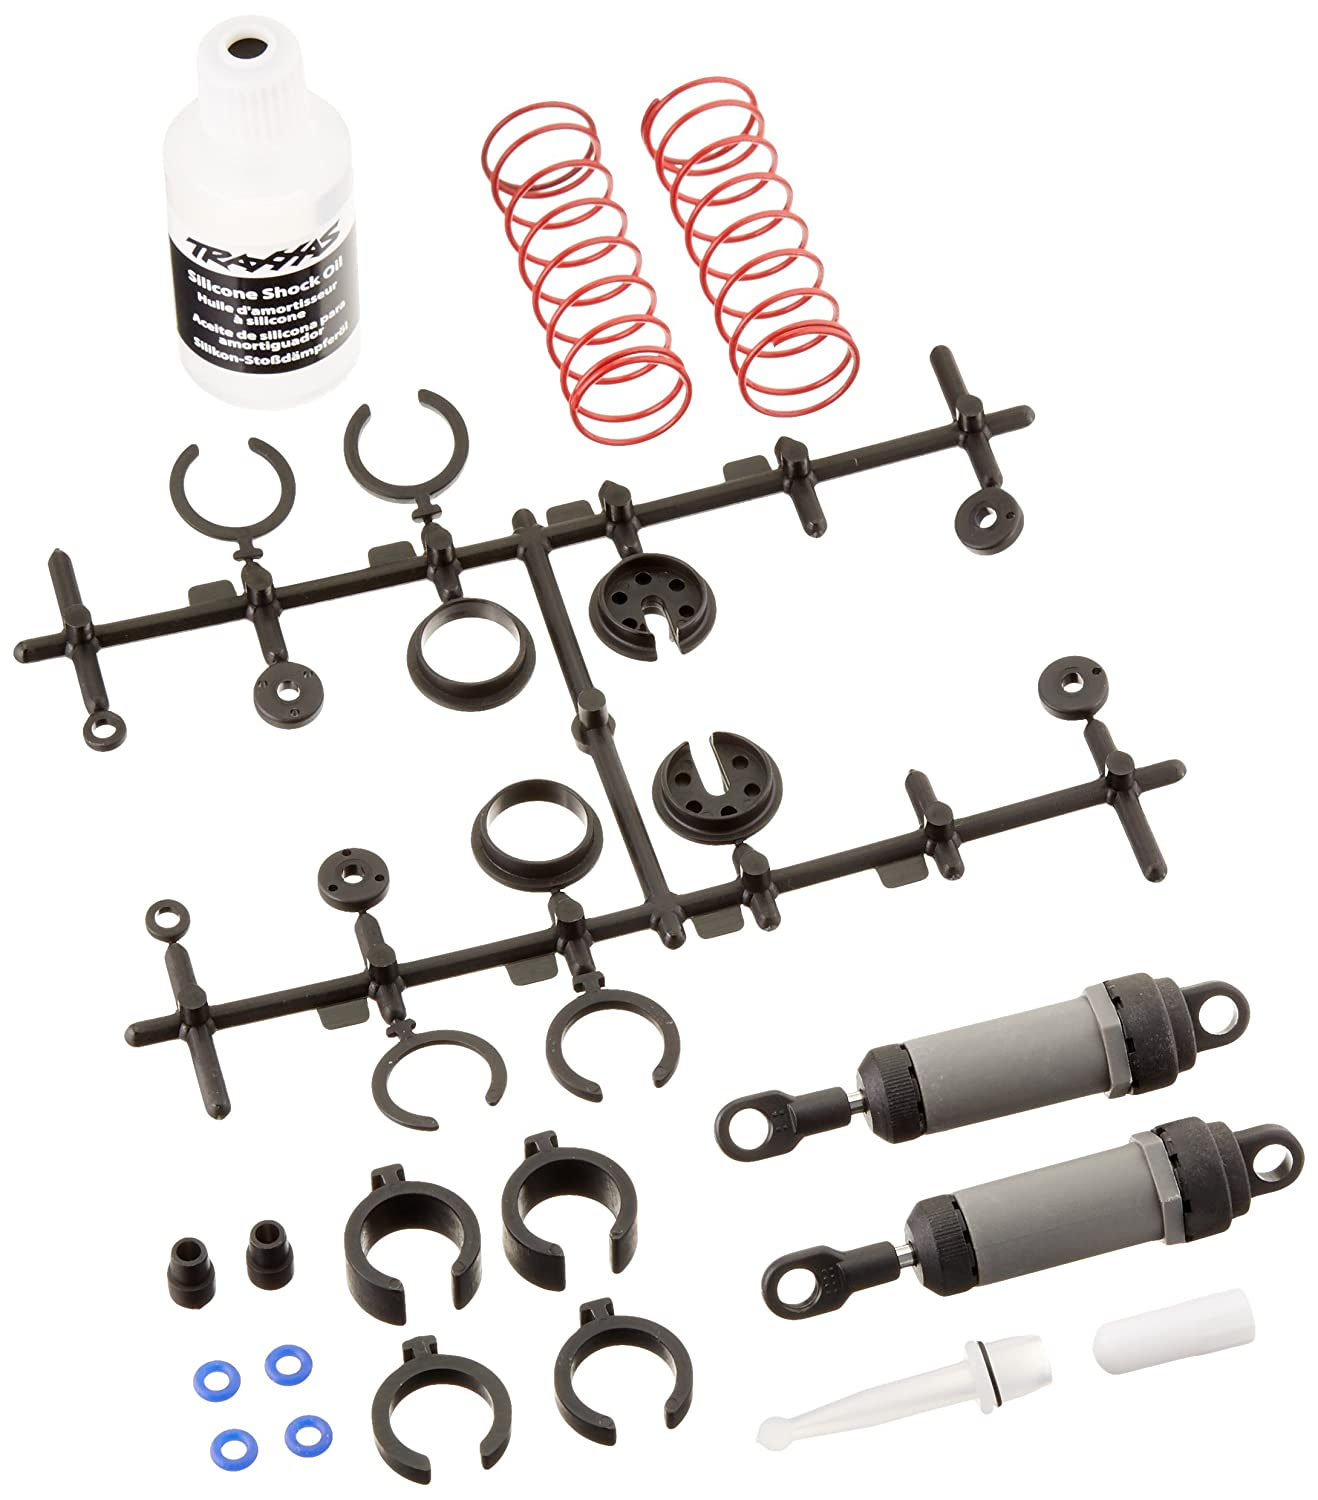 Traxxas 3760A Gray Ultra Shocks Complete with Springs, Long (pair) TRA3760A